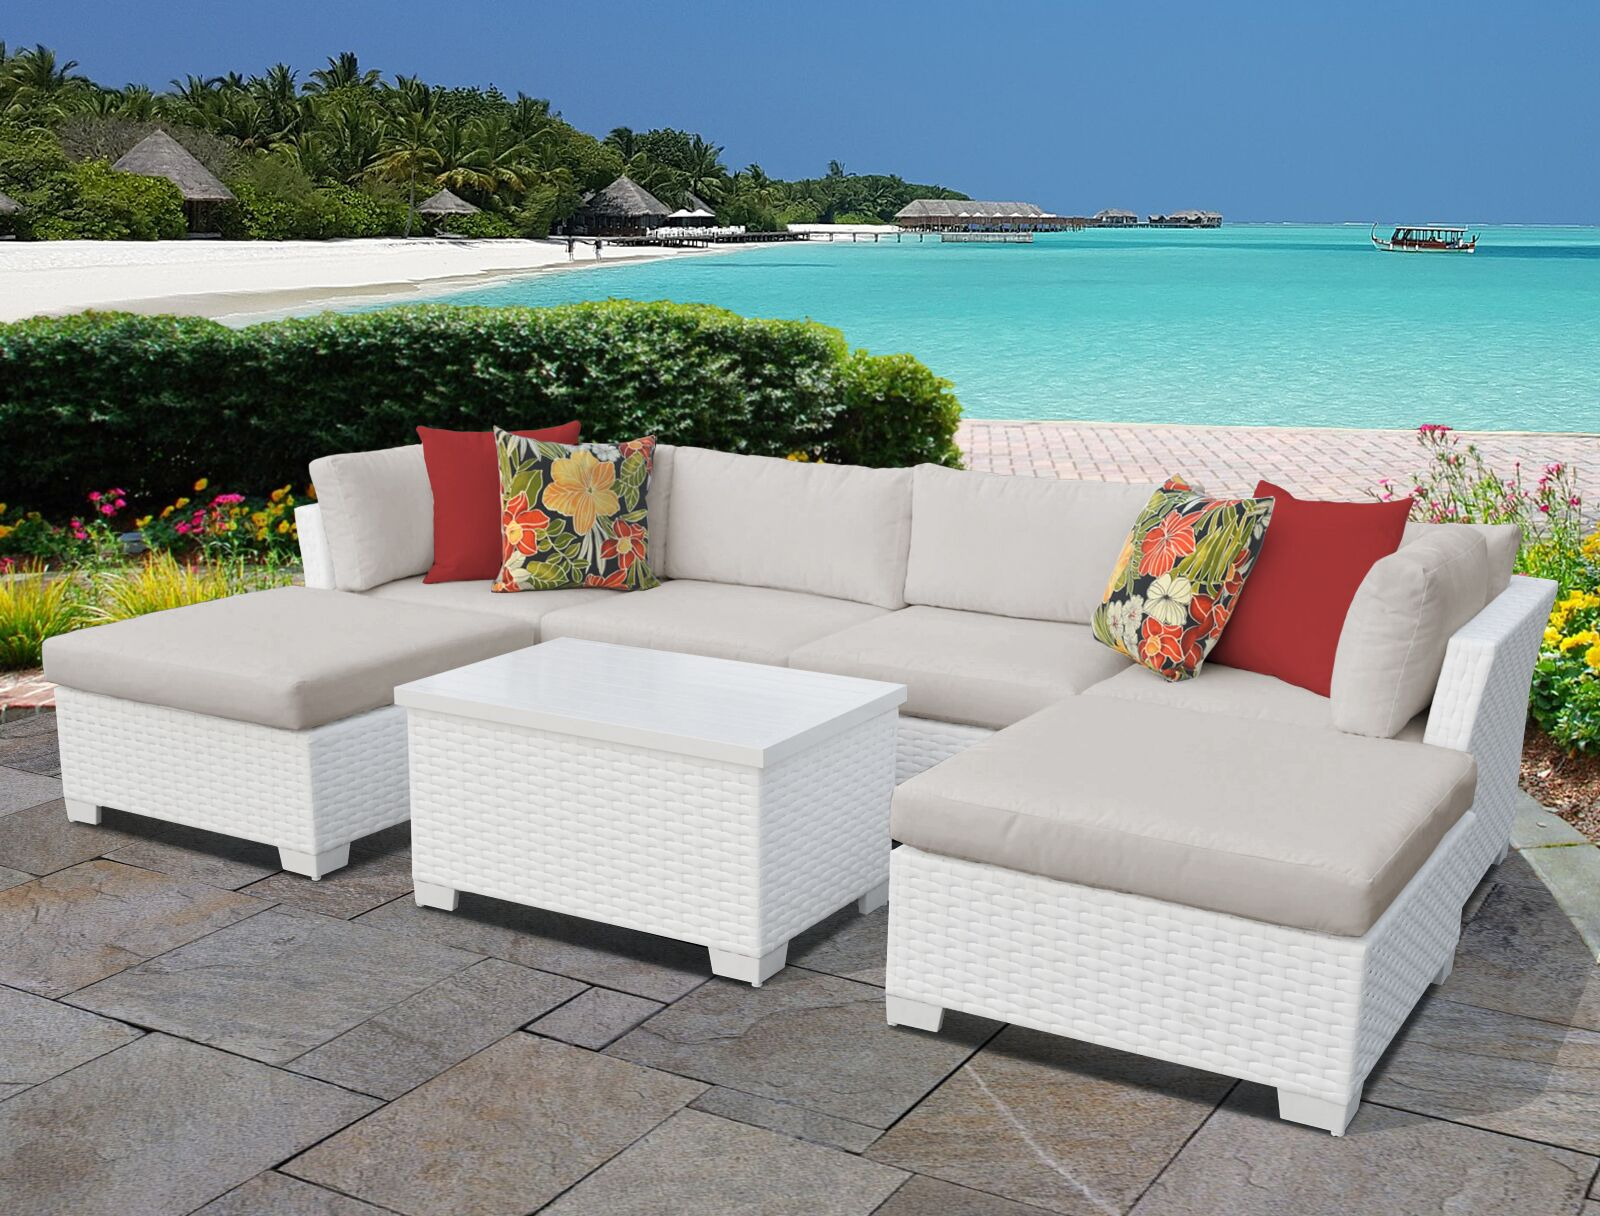 Monaco 7 Piece Sectional Set with Cushions Cushion Color (Fabric): Beige